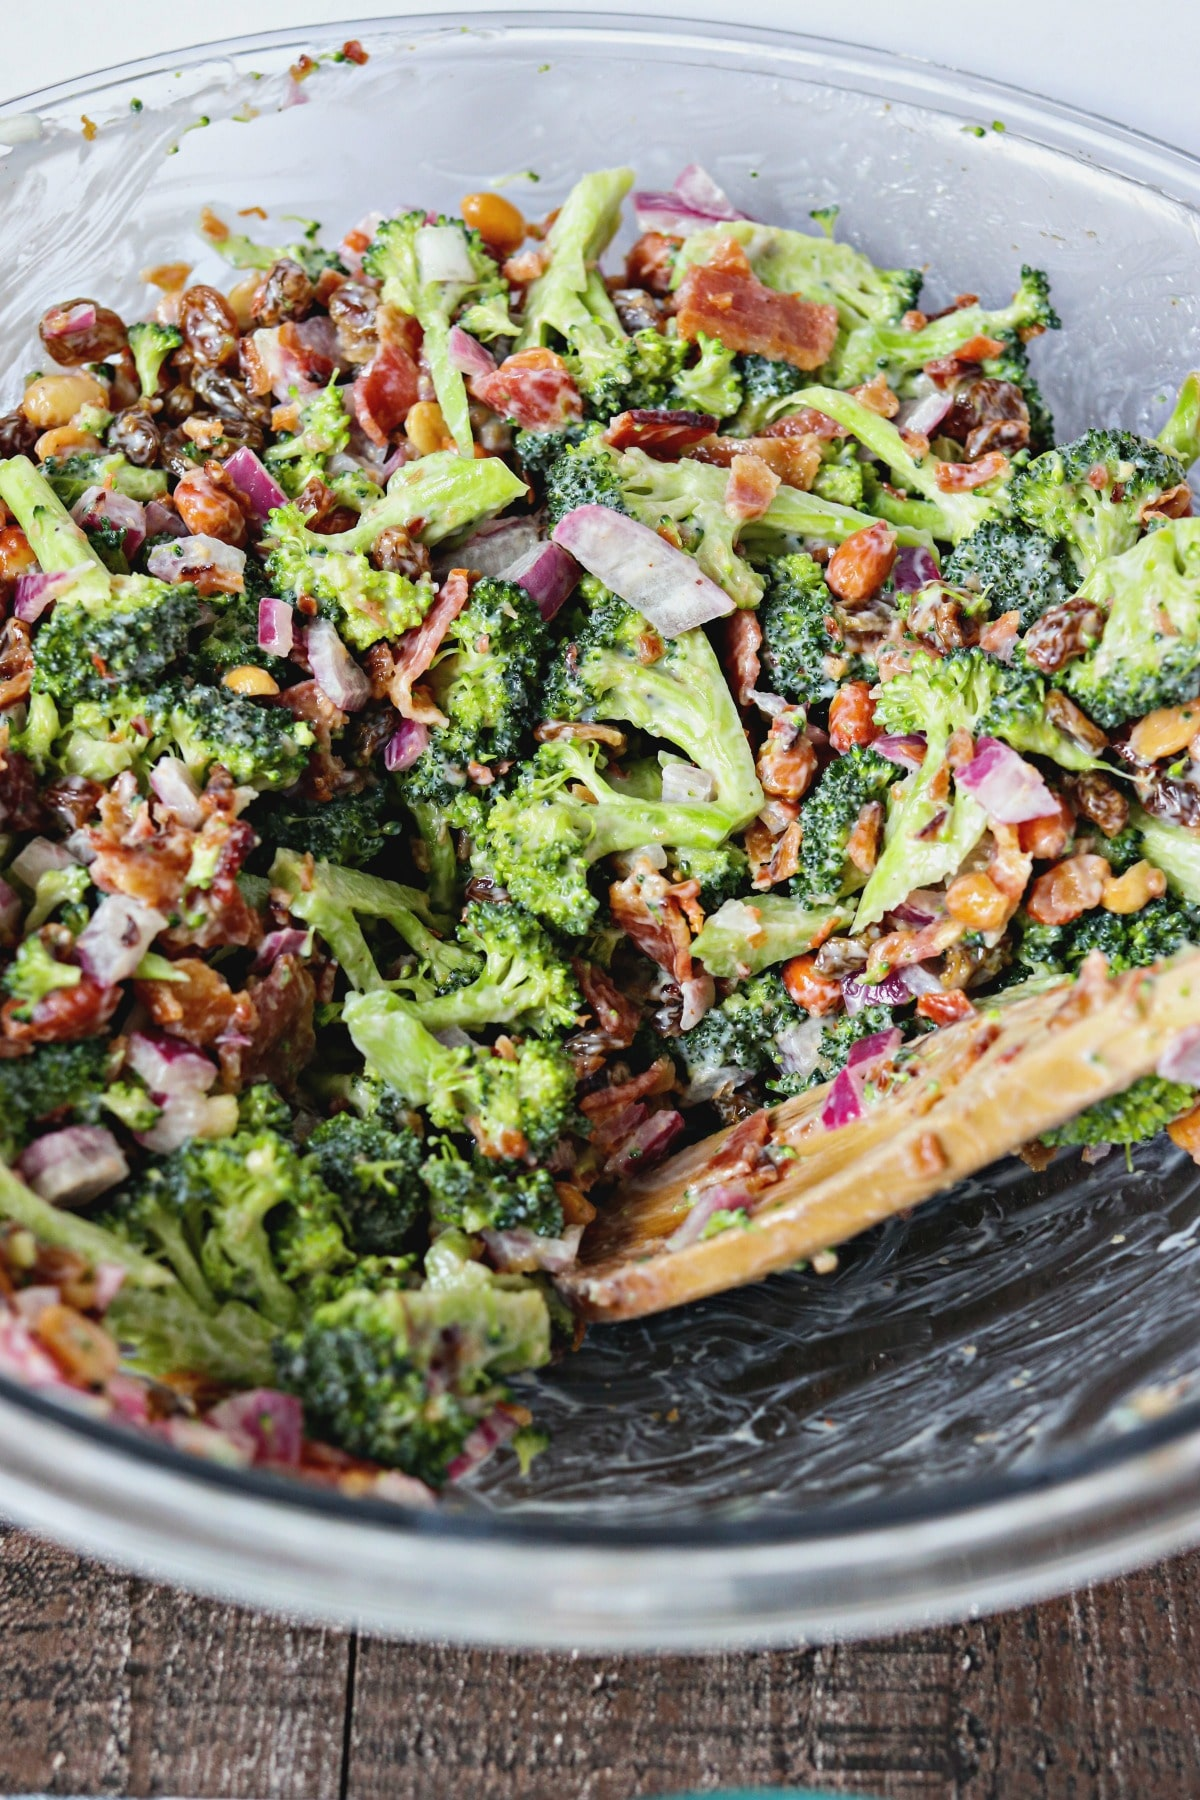 Bowl of Fresh Broccoli Salad with Crispy Bacon